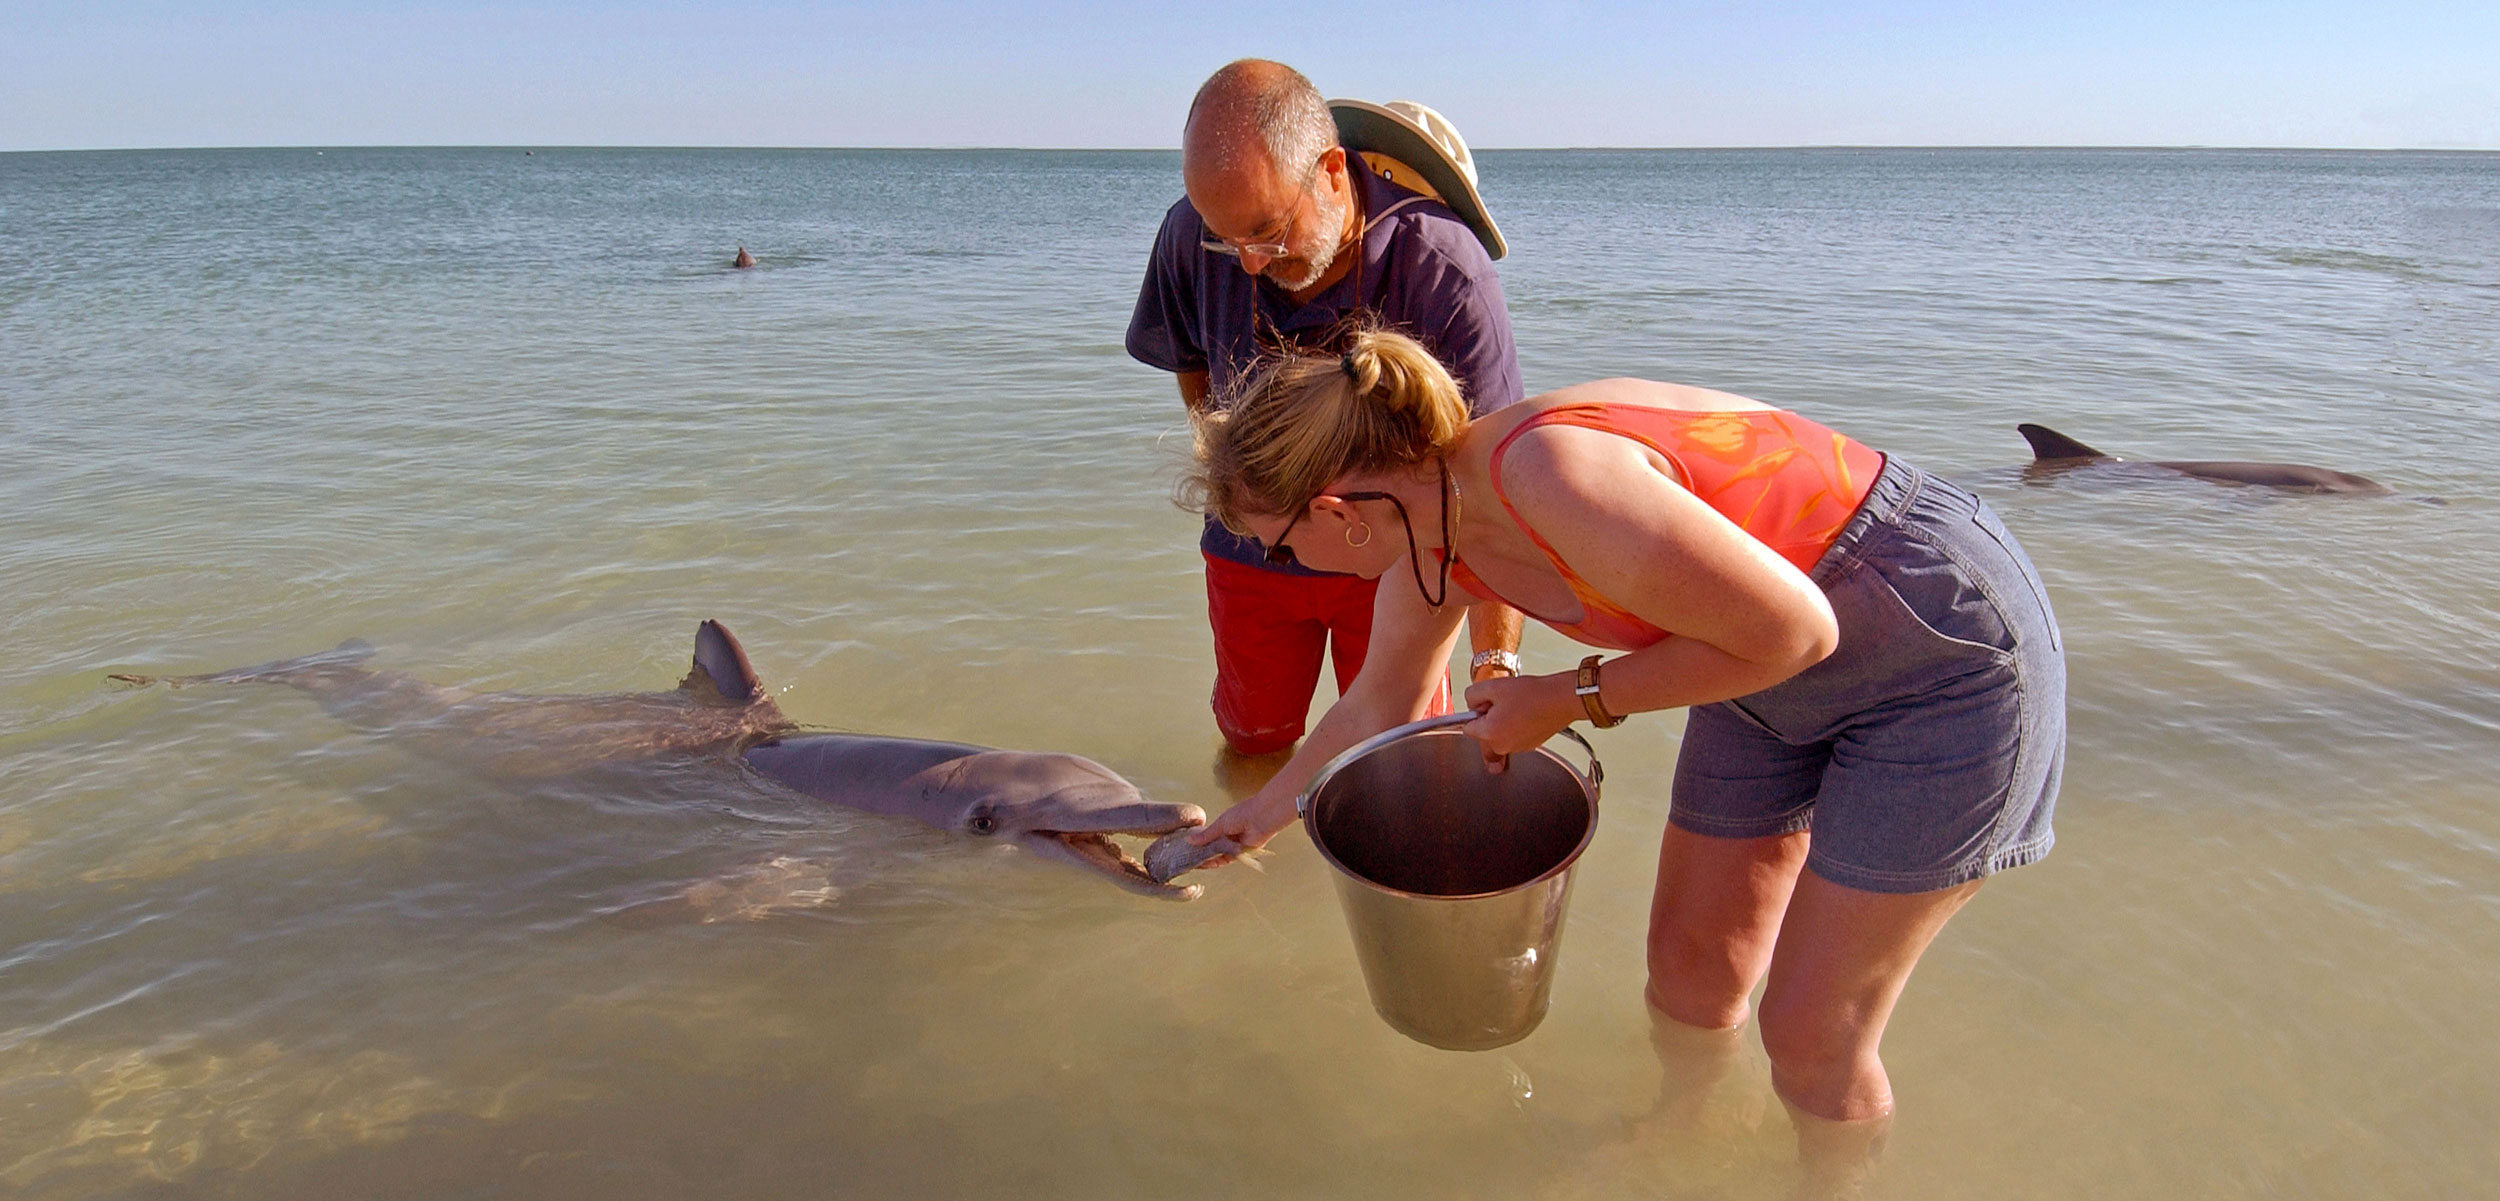 A tourist feeding fish to a Dolphin at Monkey Mia Dolphin Resort in Western Australia